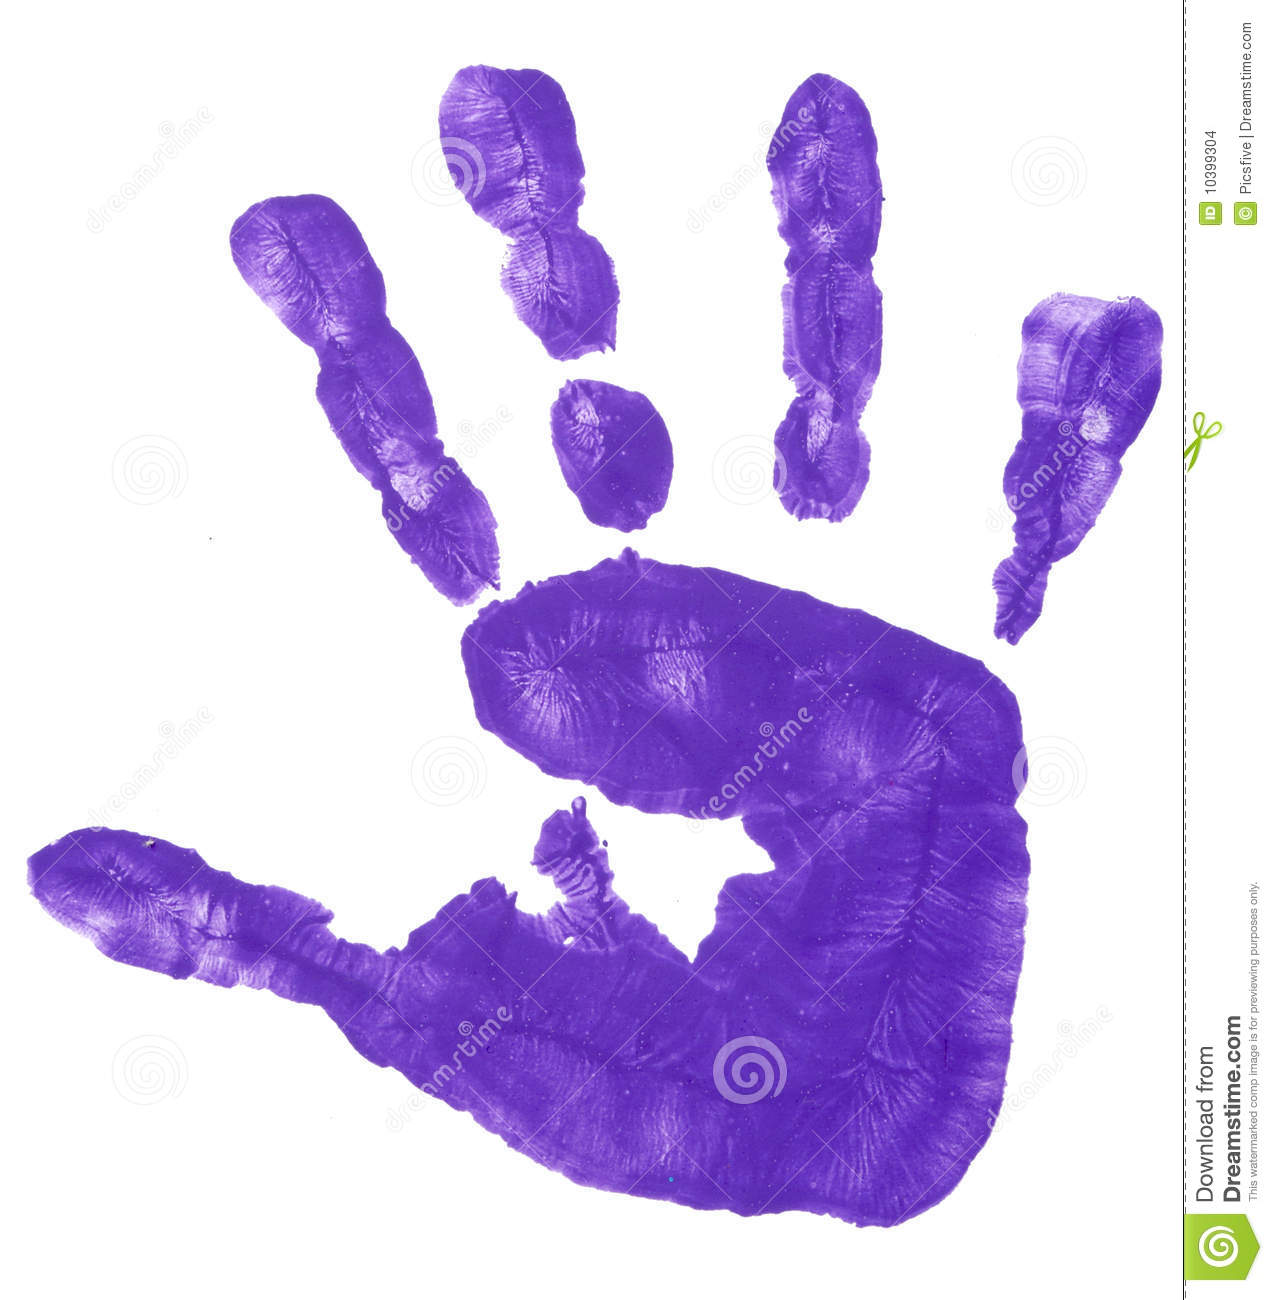 Close up of colorful child hand prints on white background.